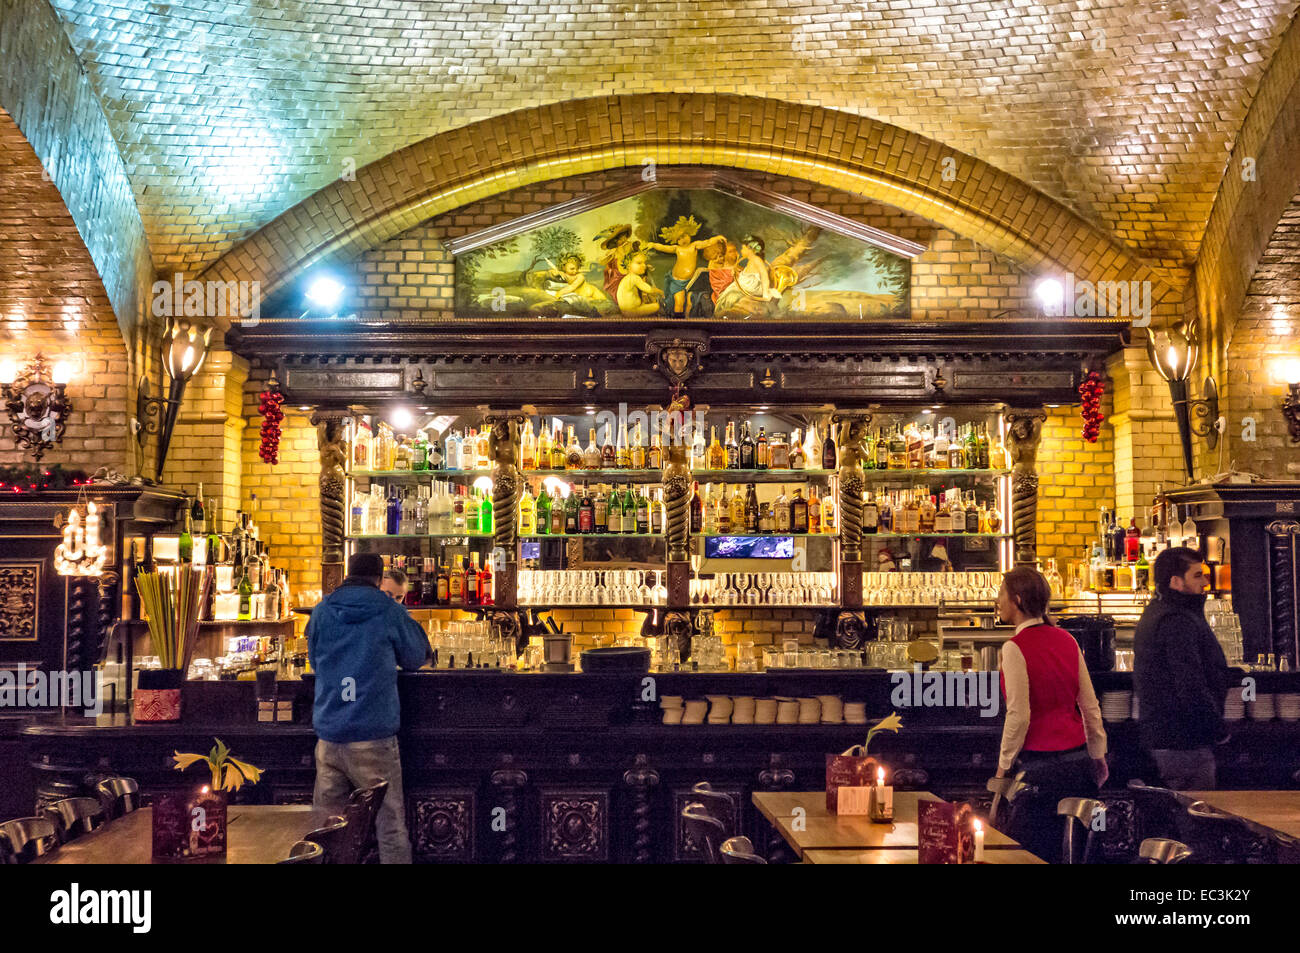 The bar at the Grand Rocka restaurant under the railway arches at Hackescher Markt, Mitte, Berlin, Germany - Stock Image